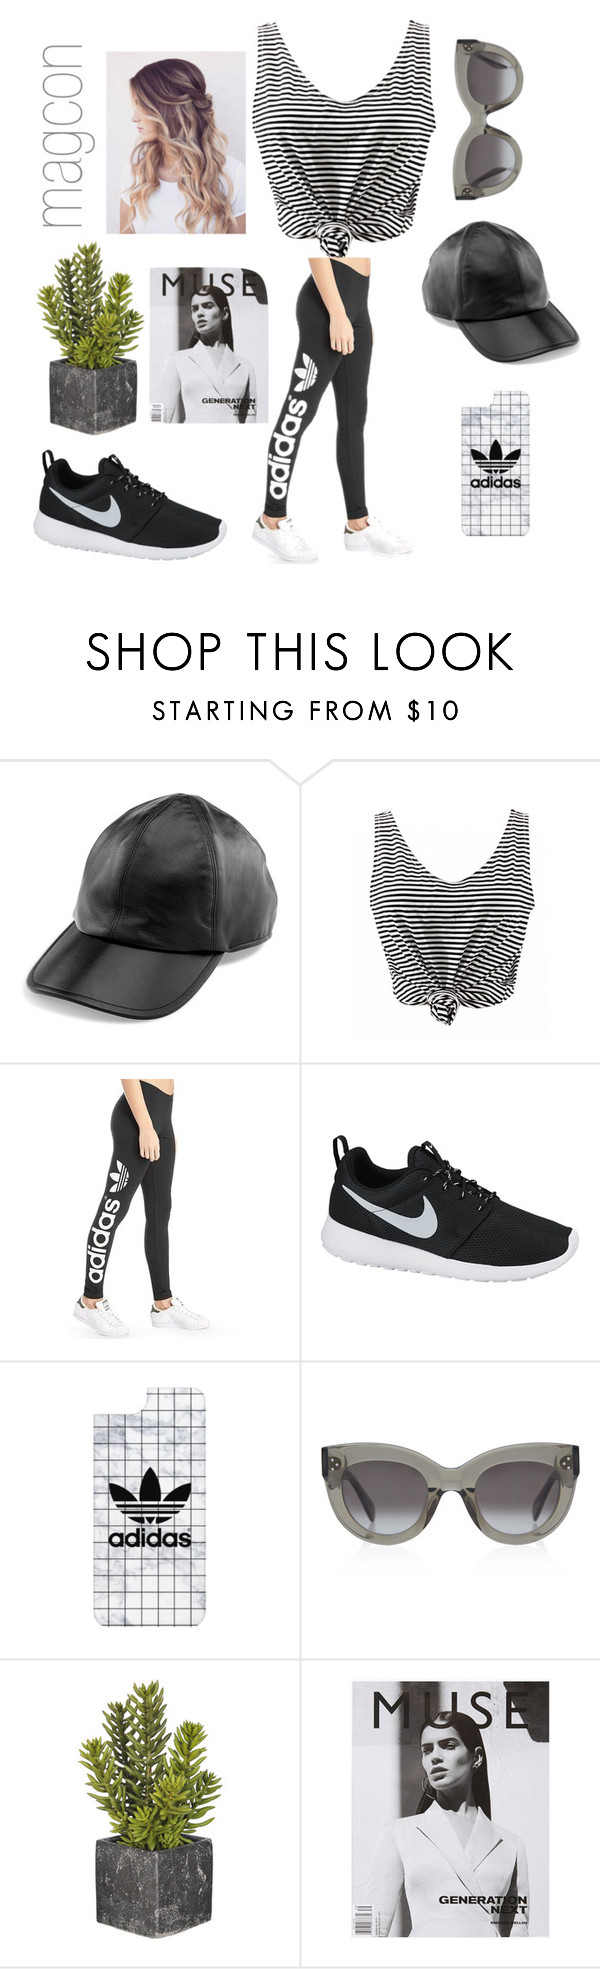 """Bri's Six Flags"" by emmagrayy ❤ liked on Polyvore featuring Yestadt Millinery, adidas Originals, NIKE, Casetify and CÉLINE"